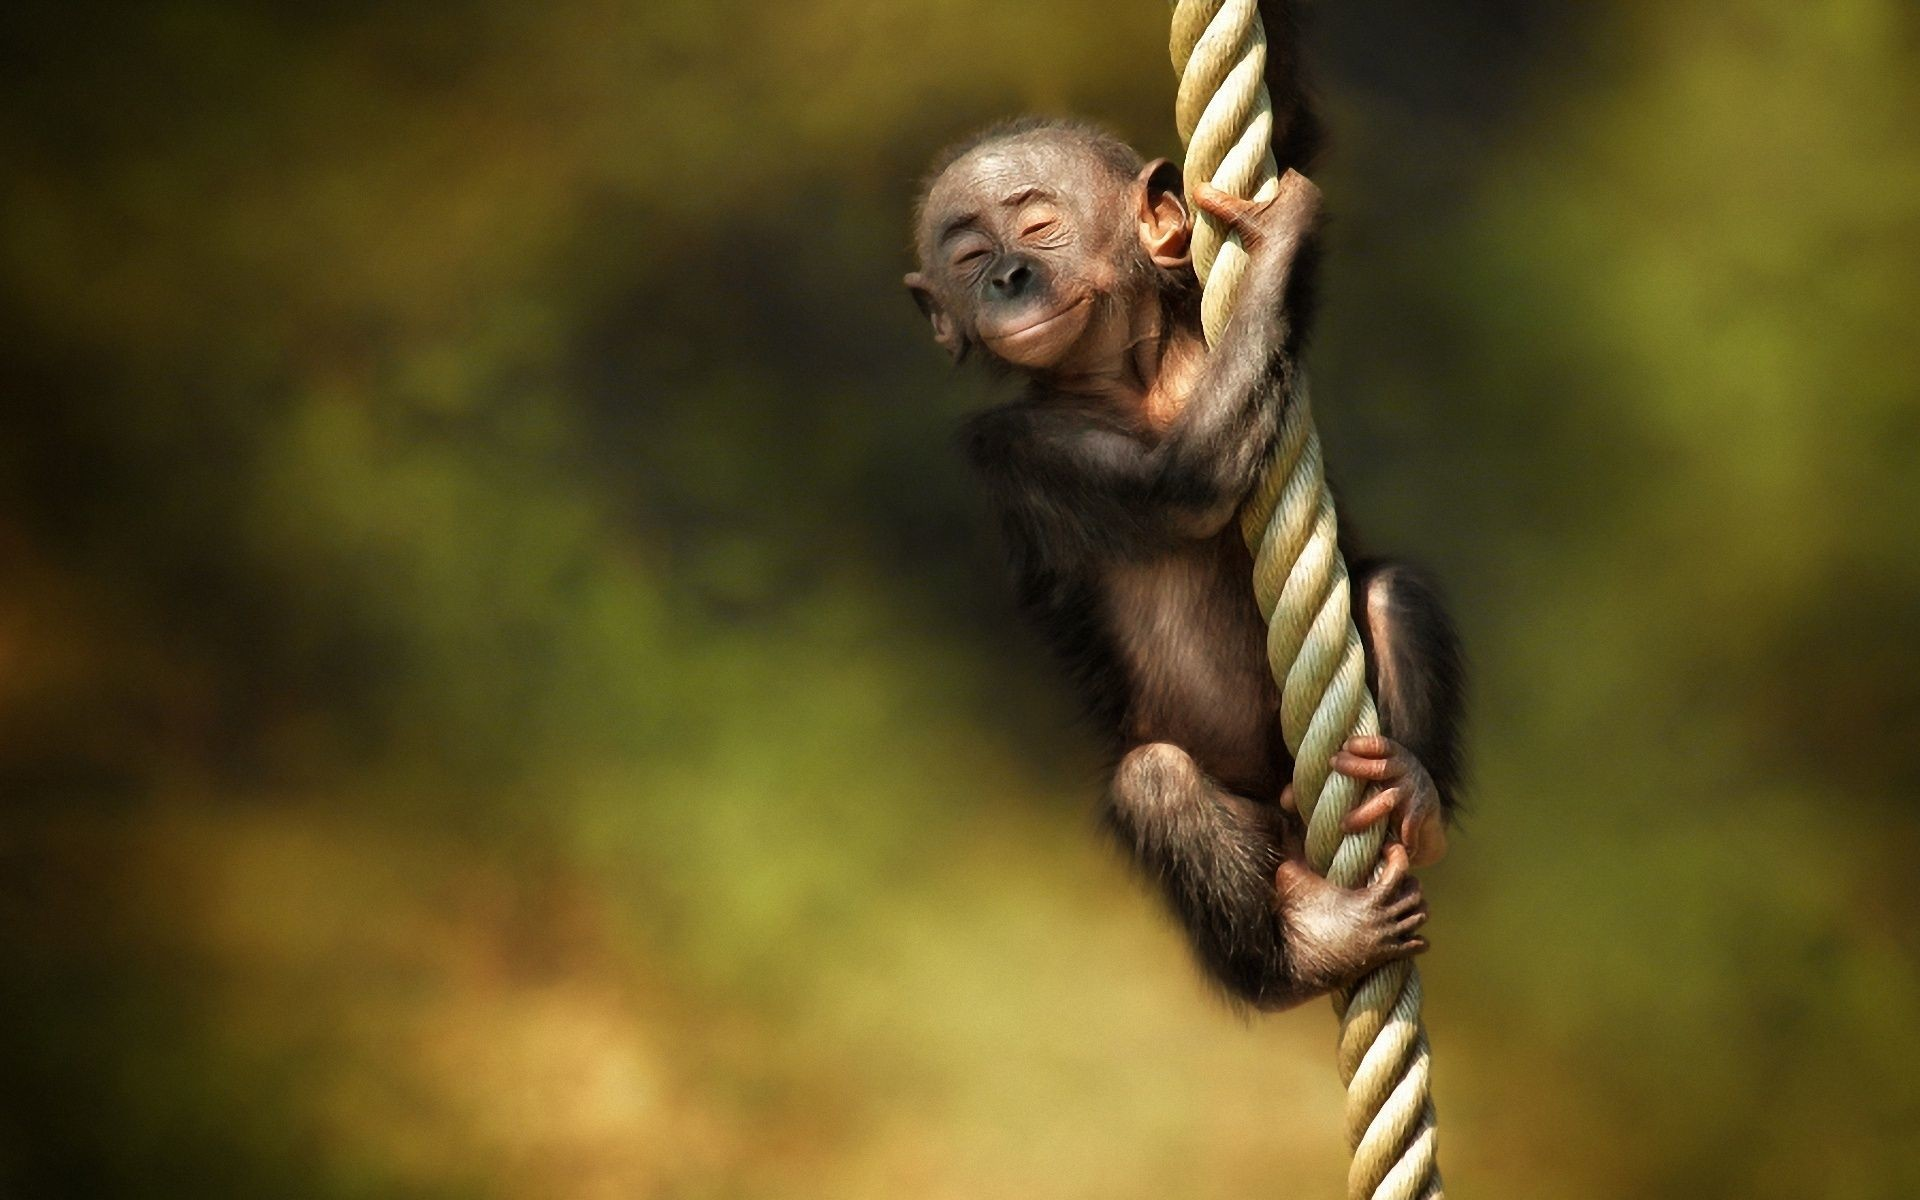 1920x1200 Monkey Wallpapers HD Pictures